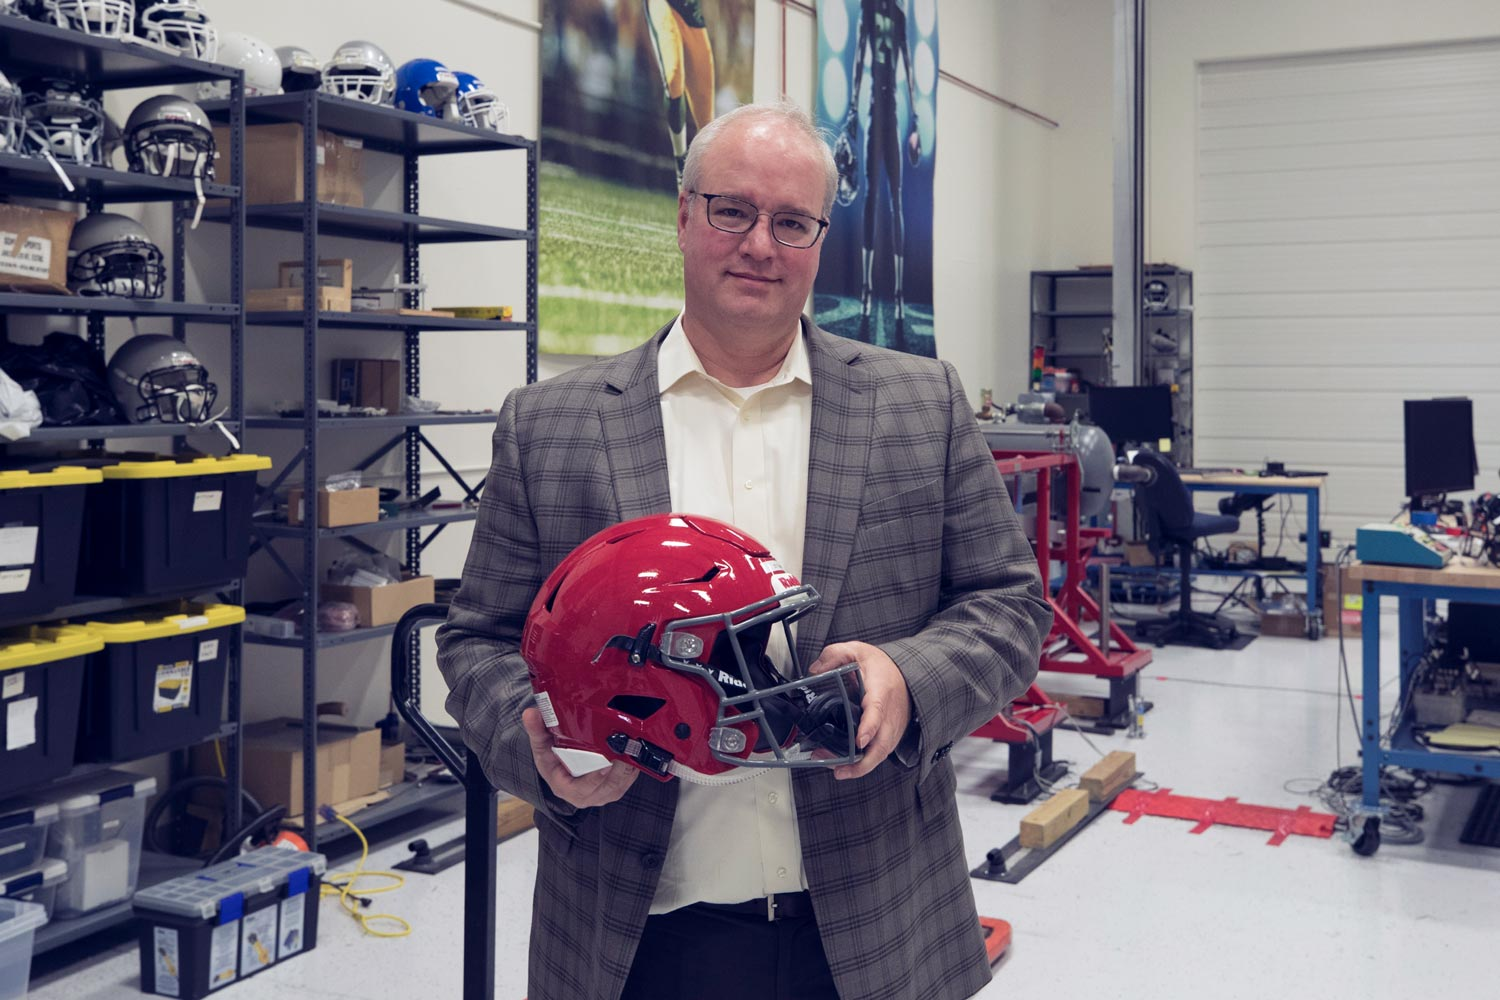 Biomechanical engineer Jeff Crandall has conducted equipment tests for the NFL for a decade now.